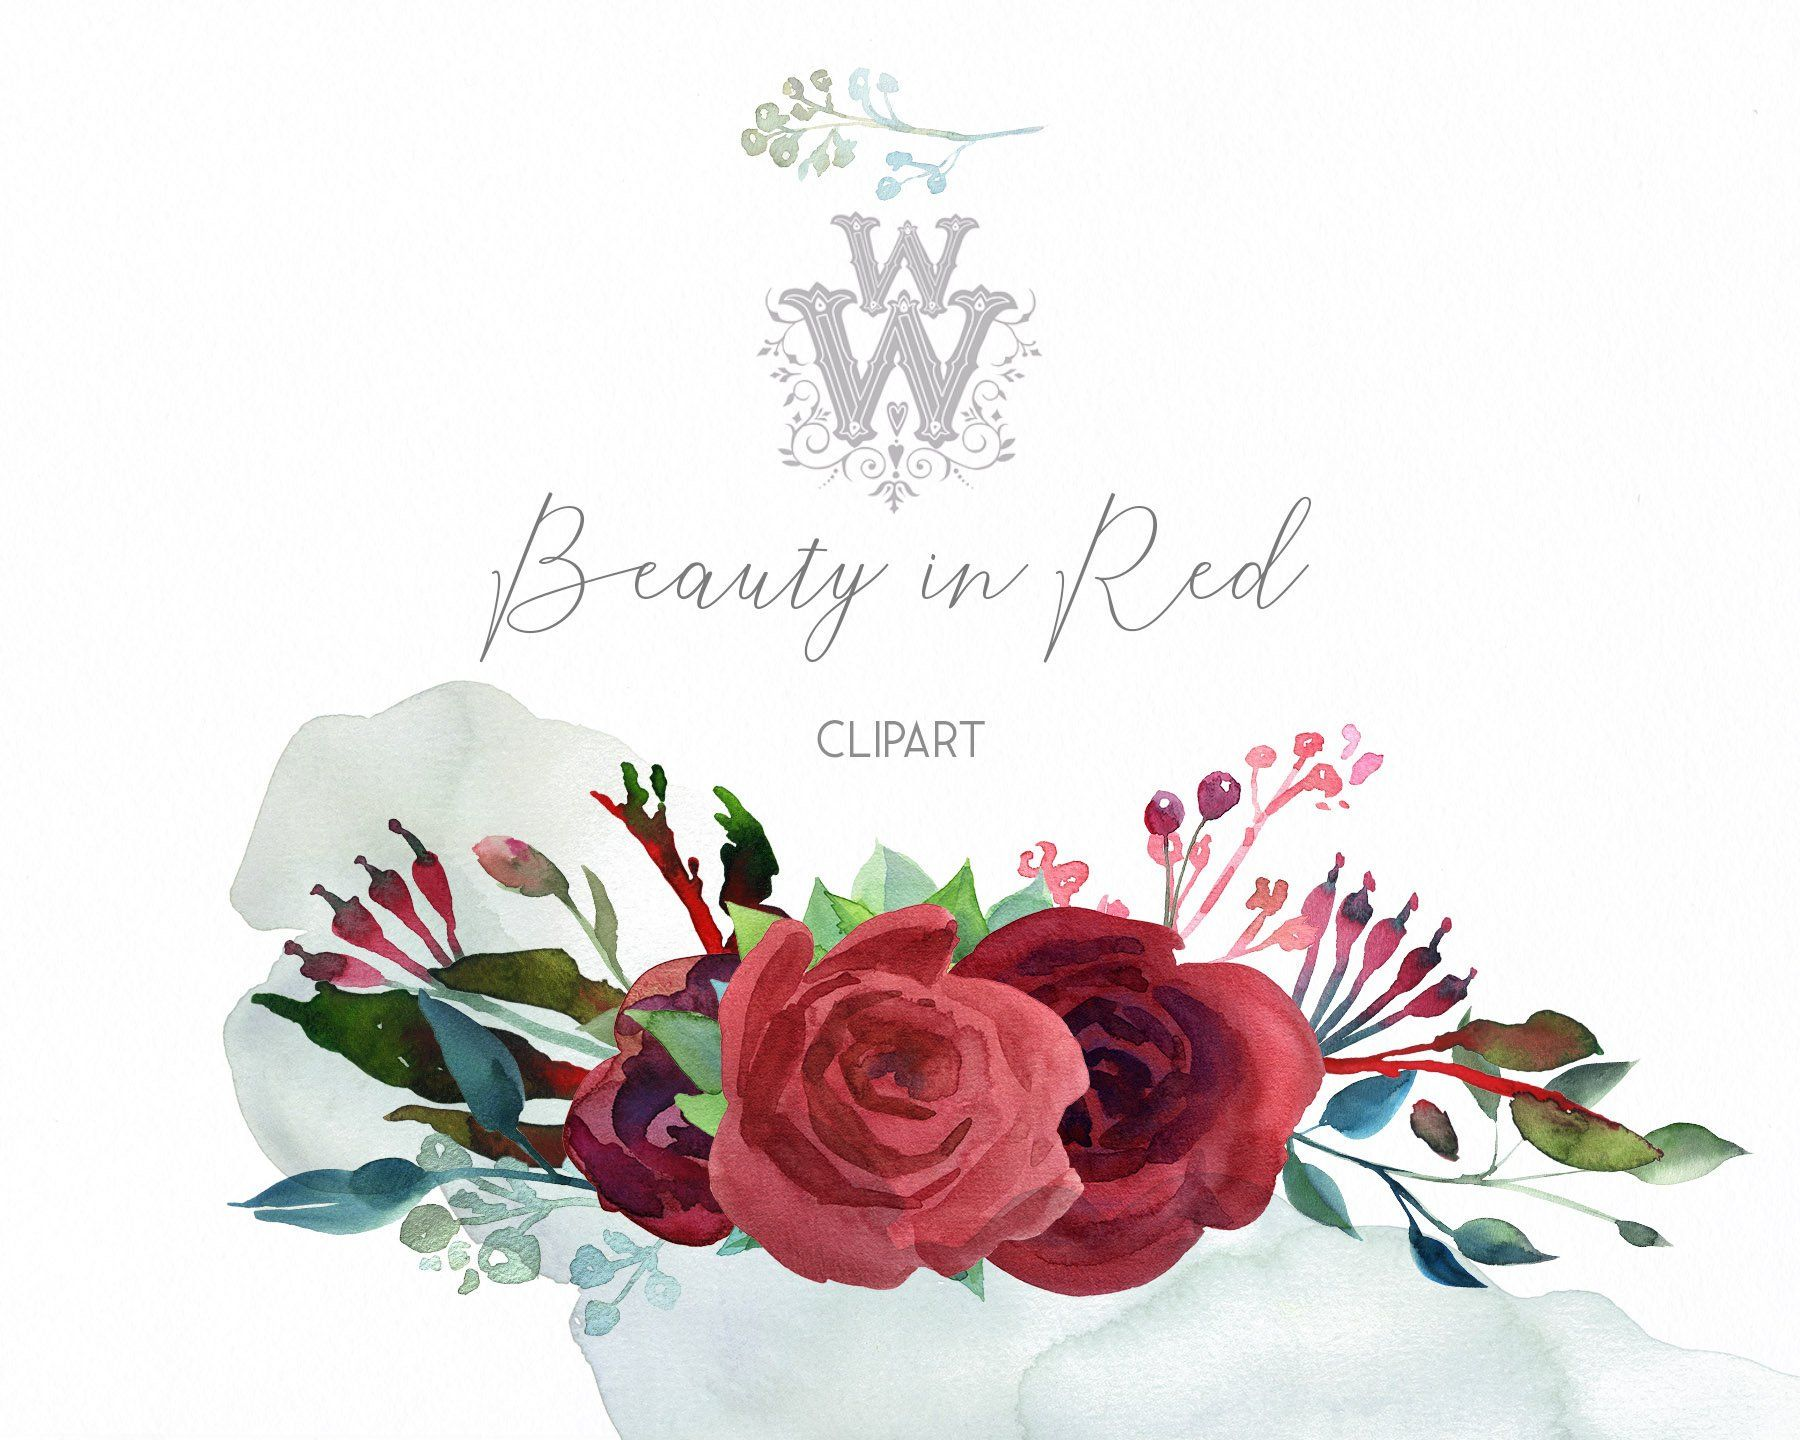 Red Rose Watercolor Flower Clipart Watercolor Flowers